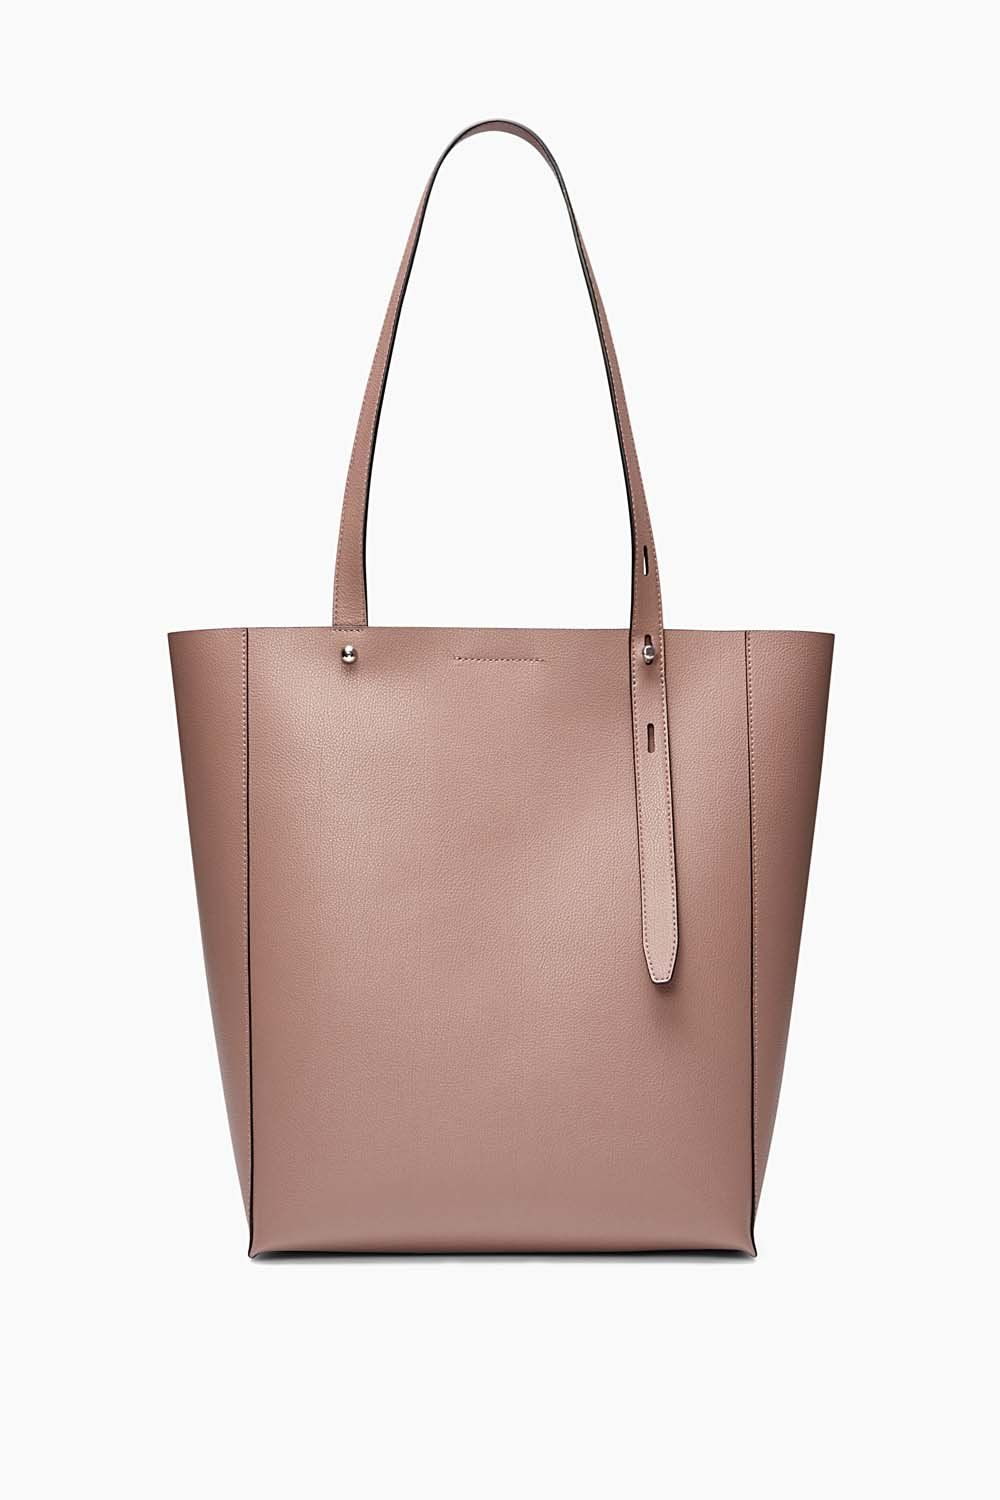 db171a3bc3a1 15 Best Laptop Bags For Women 2018 - Stylish Work Bags For Your Computer